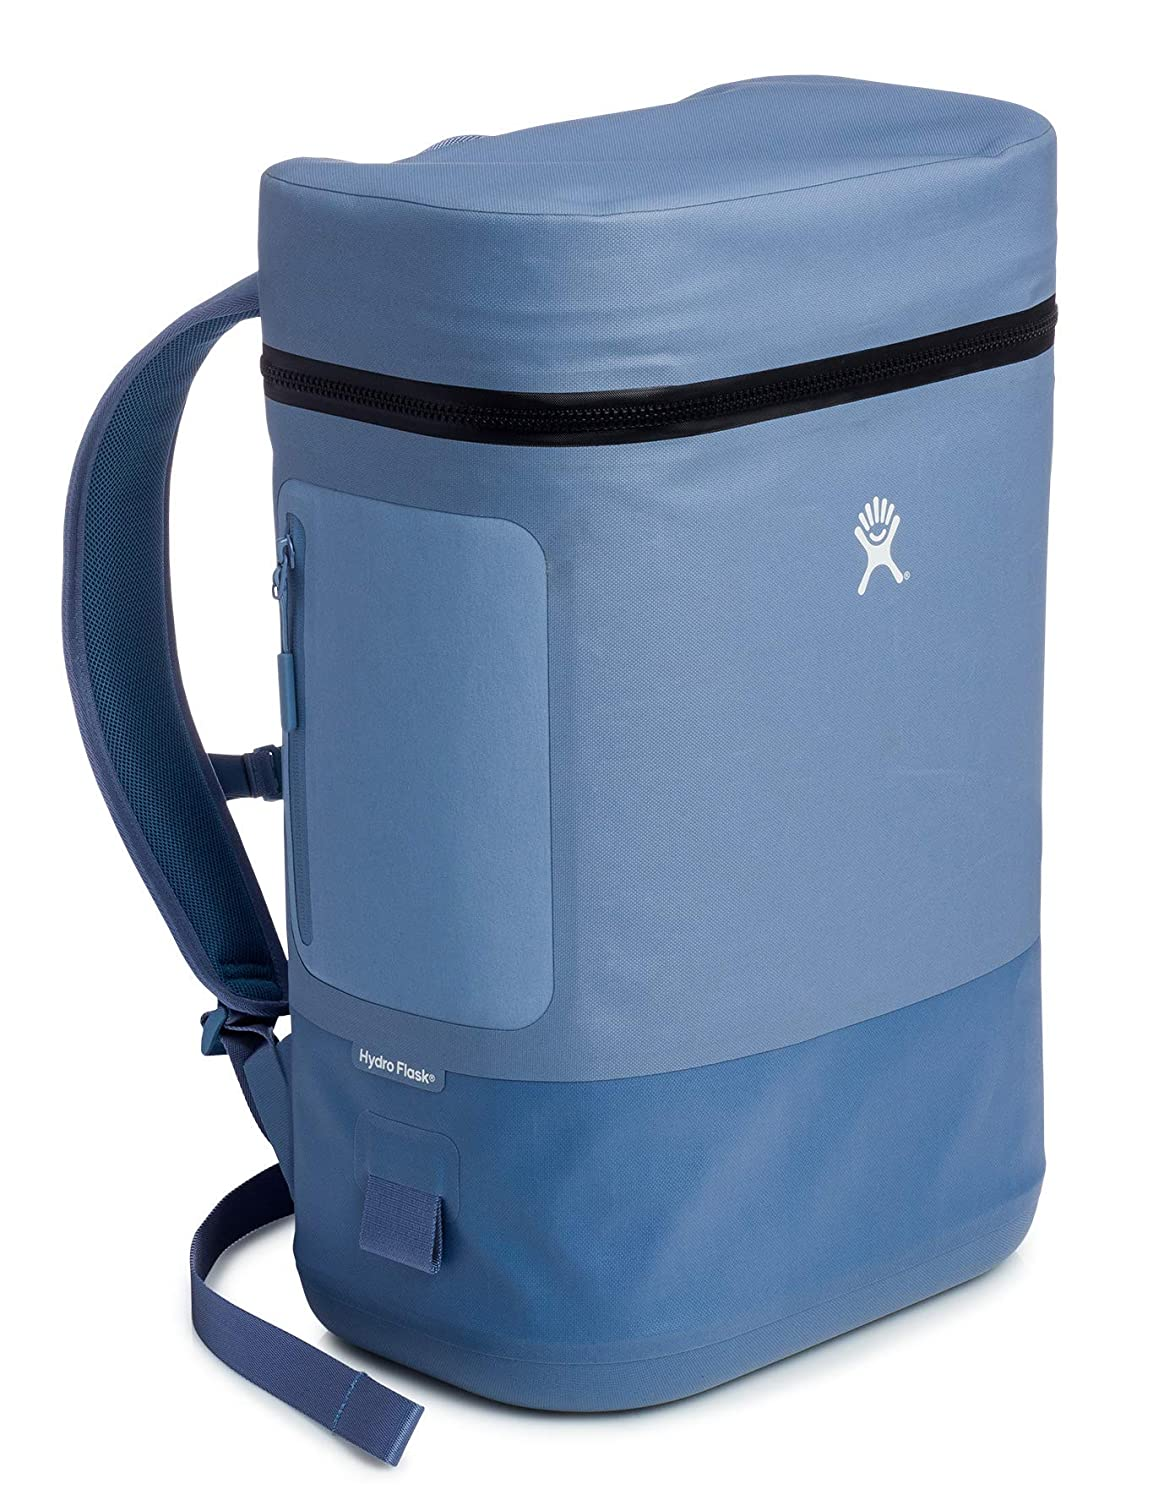 Hydro Flask 22L Soft Cooler Tote | Smart Insulation & Waterproof | Great for Food, Drink, and Camping | Storm